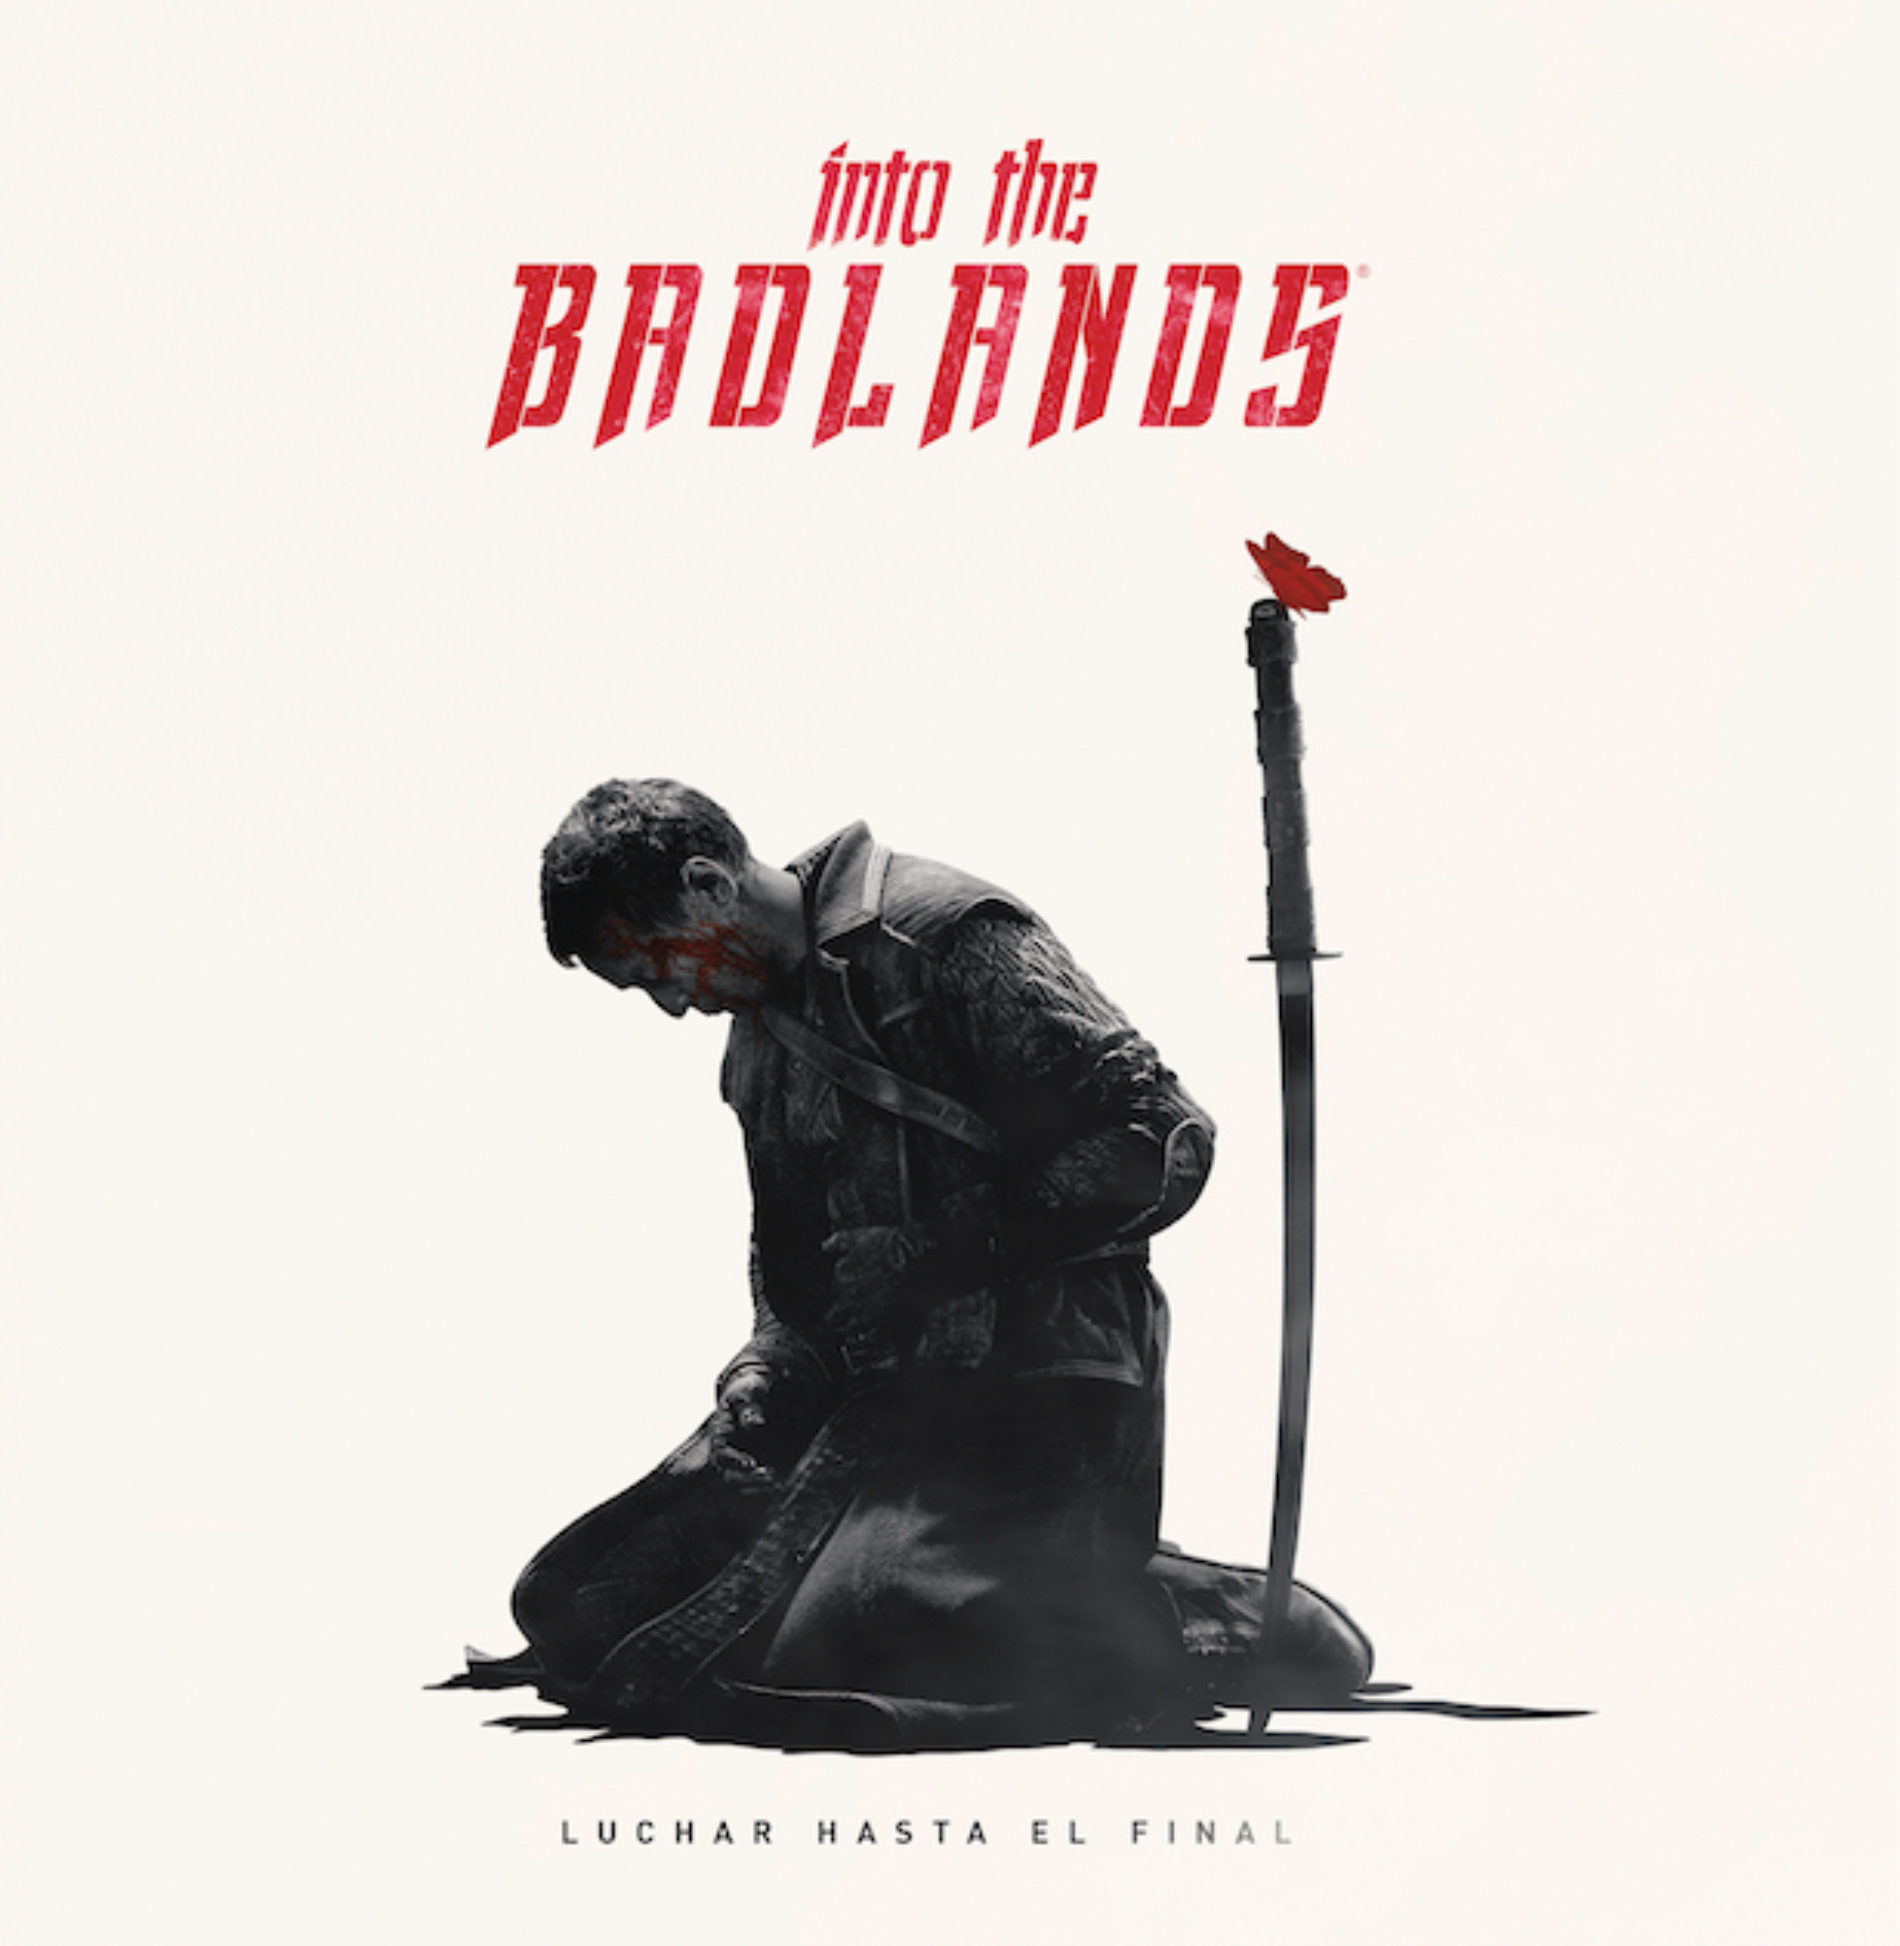 Episodios finales de Into the Badlands desde este lunes 1 de abril